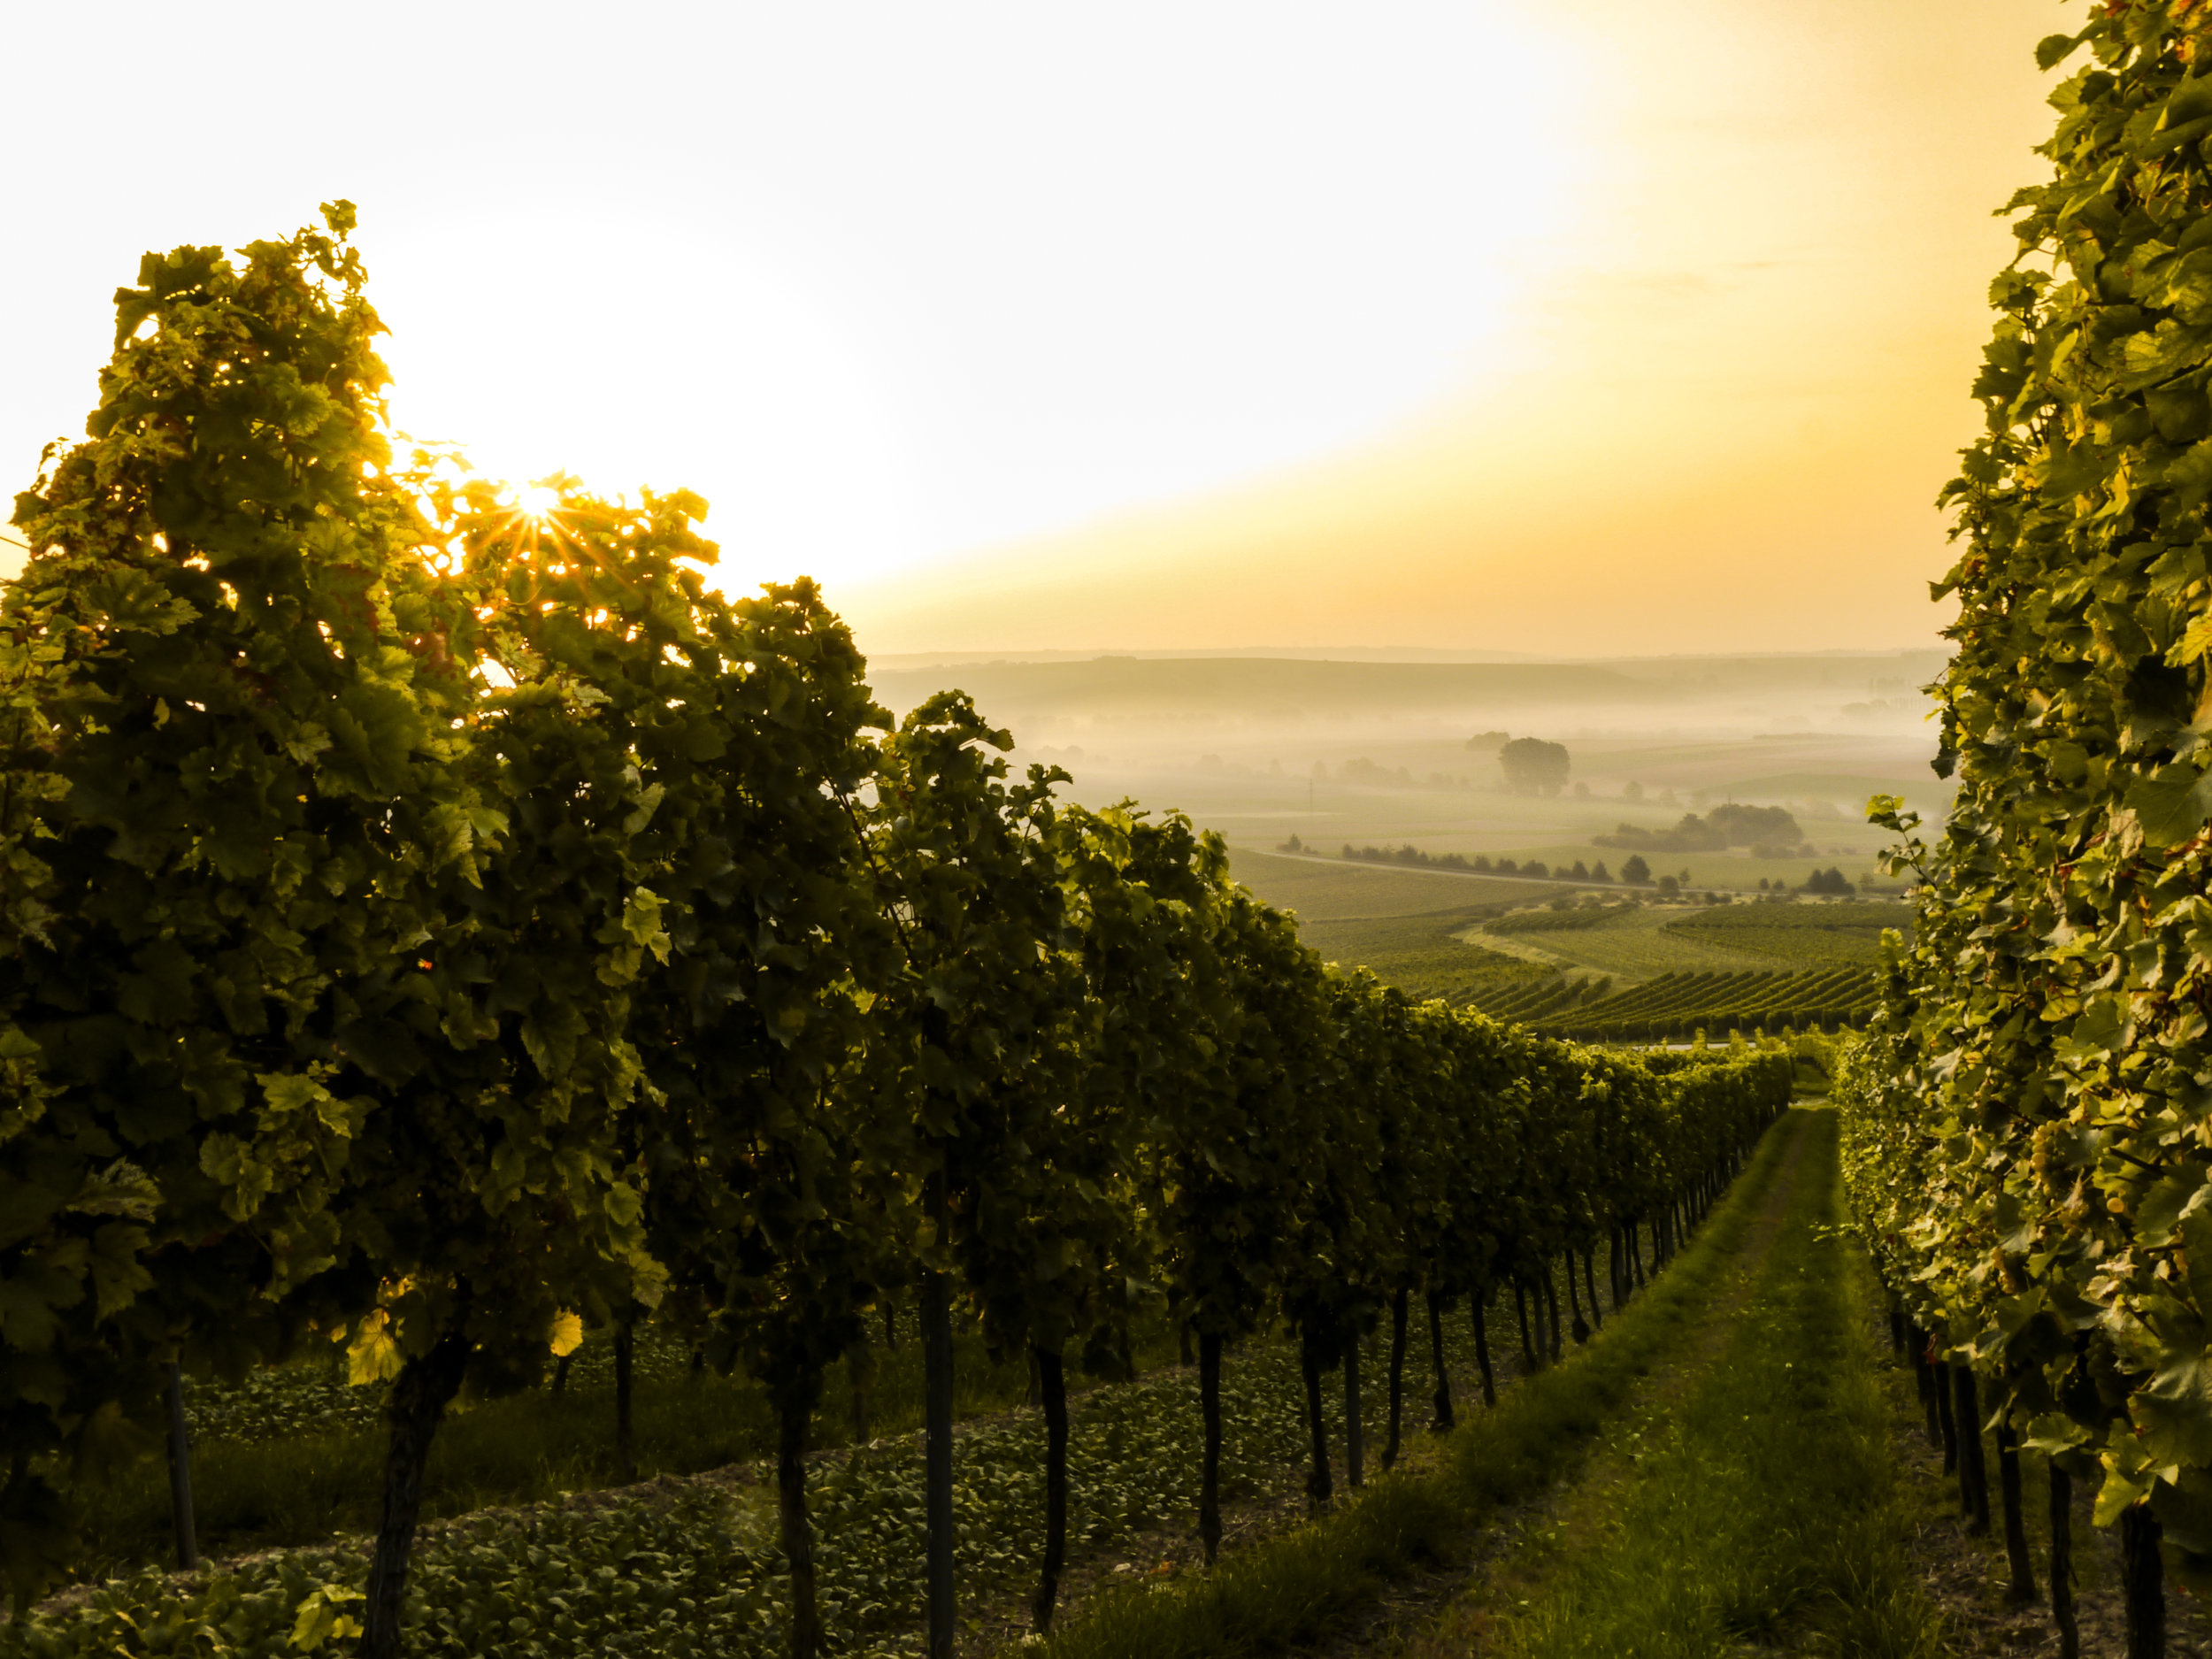 Our Locations dinner will feature wines from New Zealand, Spain, France and California.